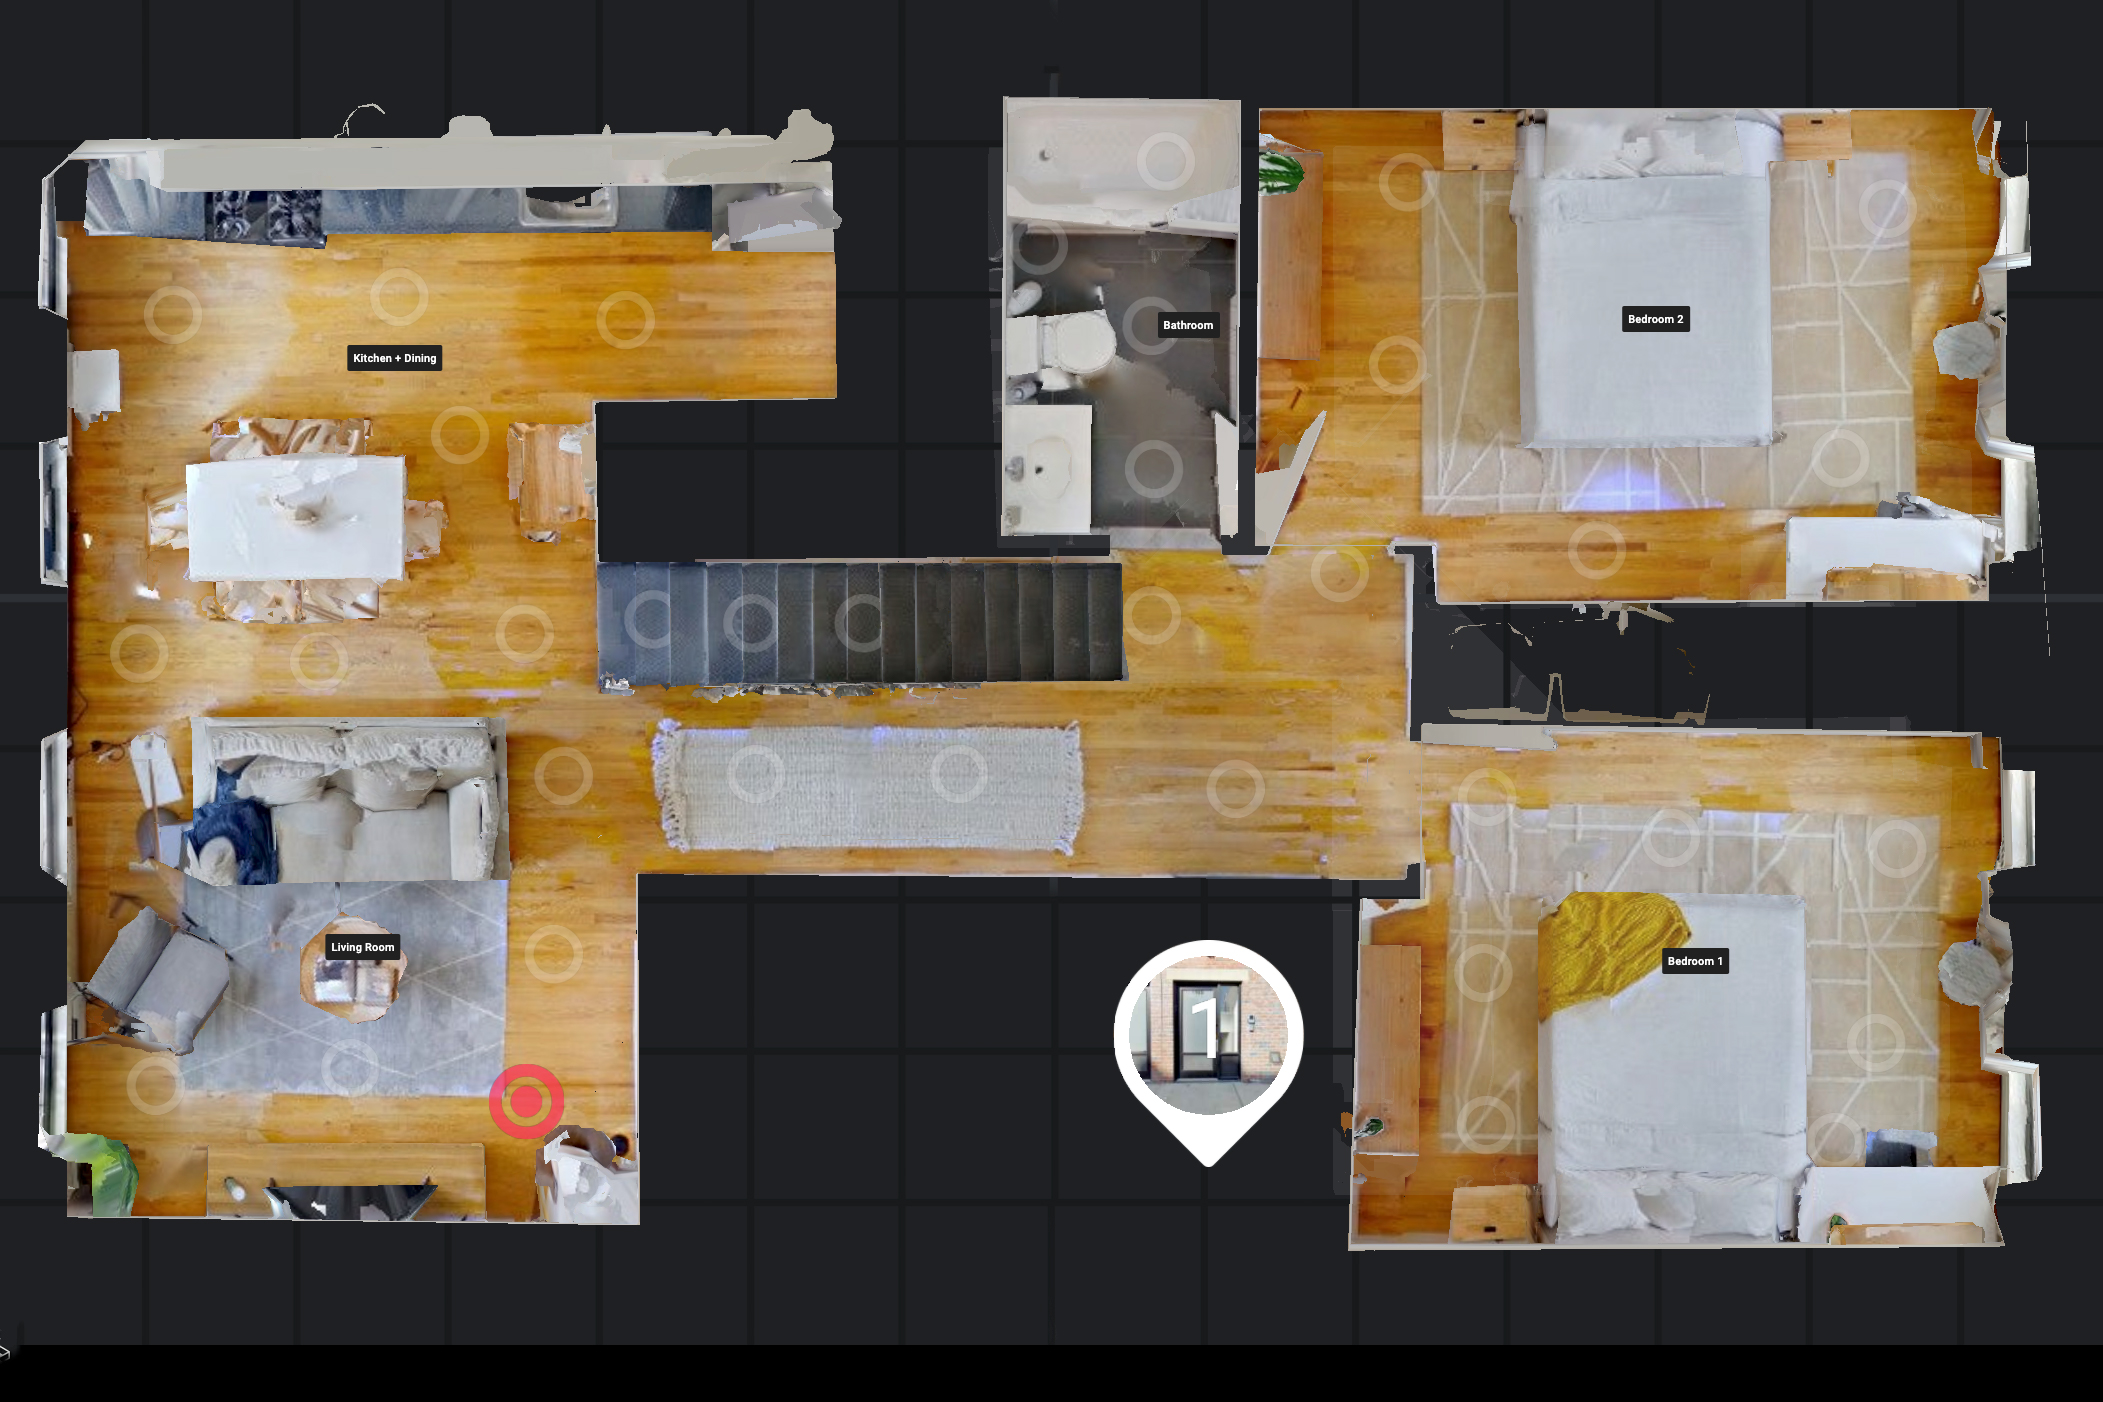 Understand layout in a glance with top-down Floorplan View.